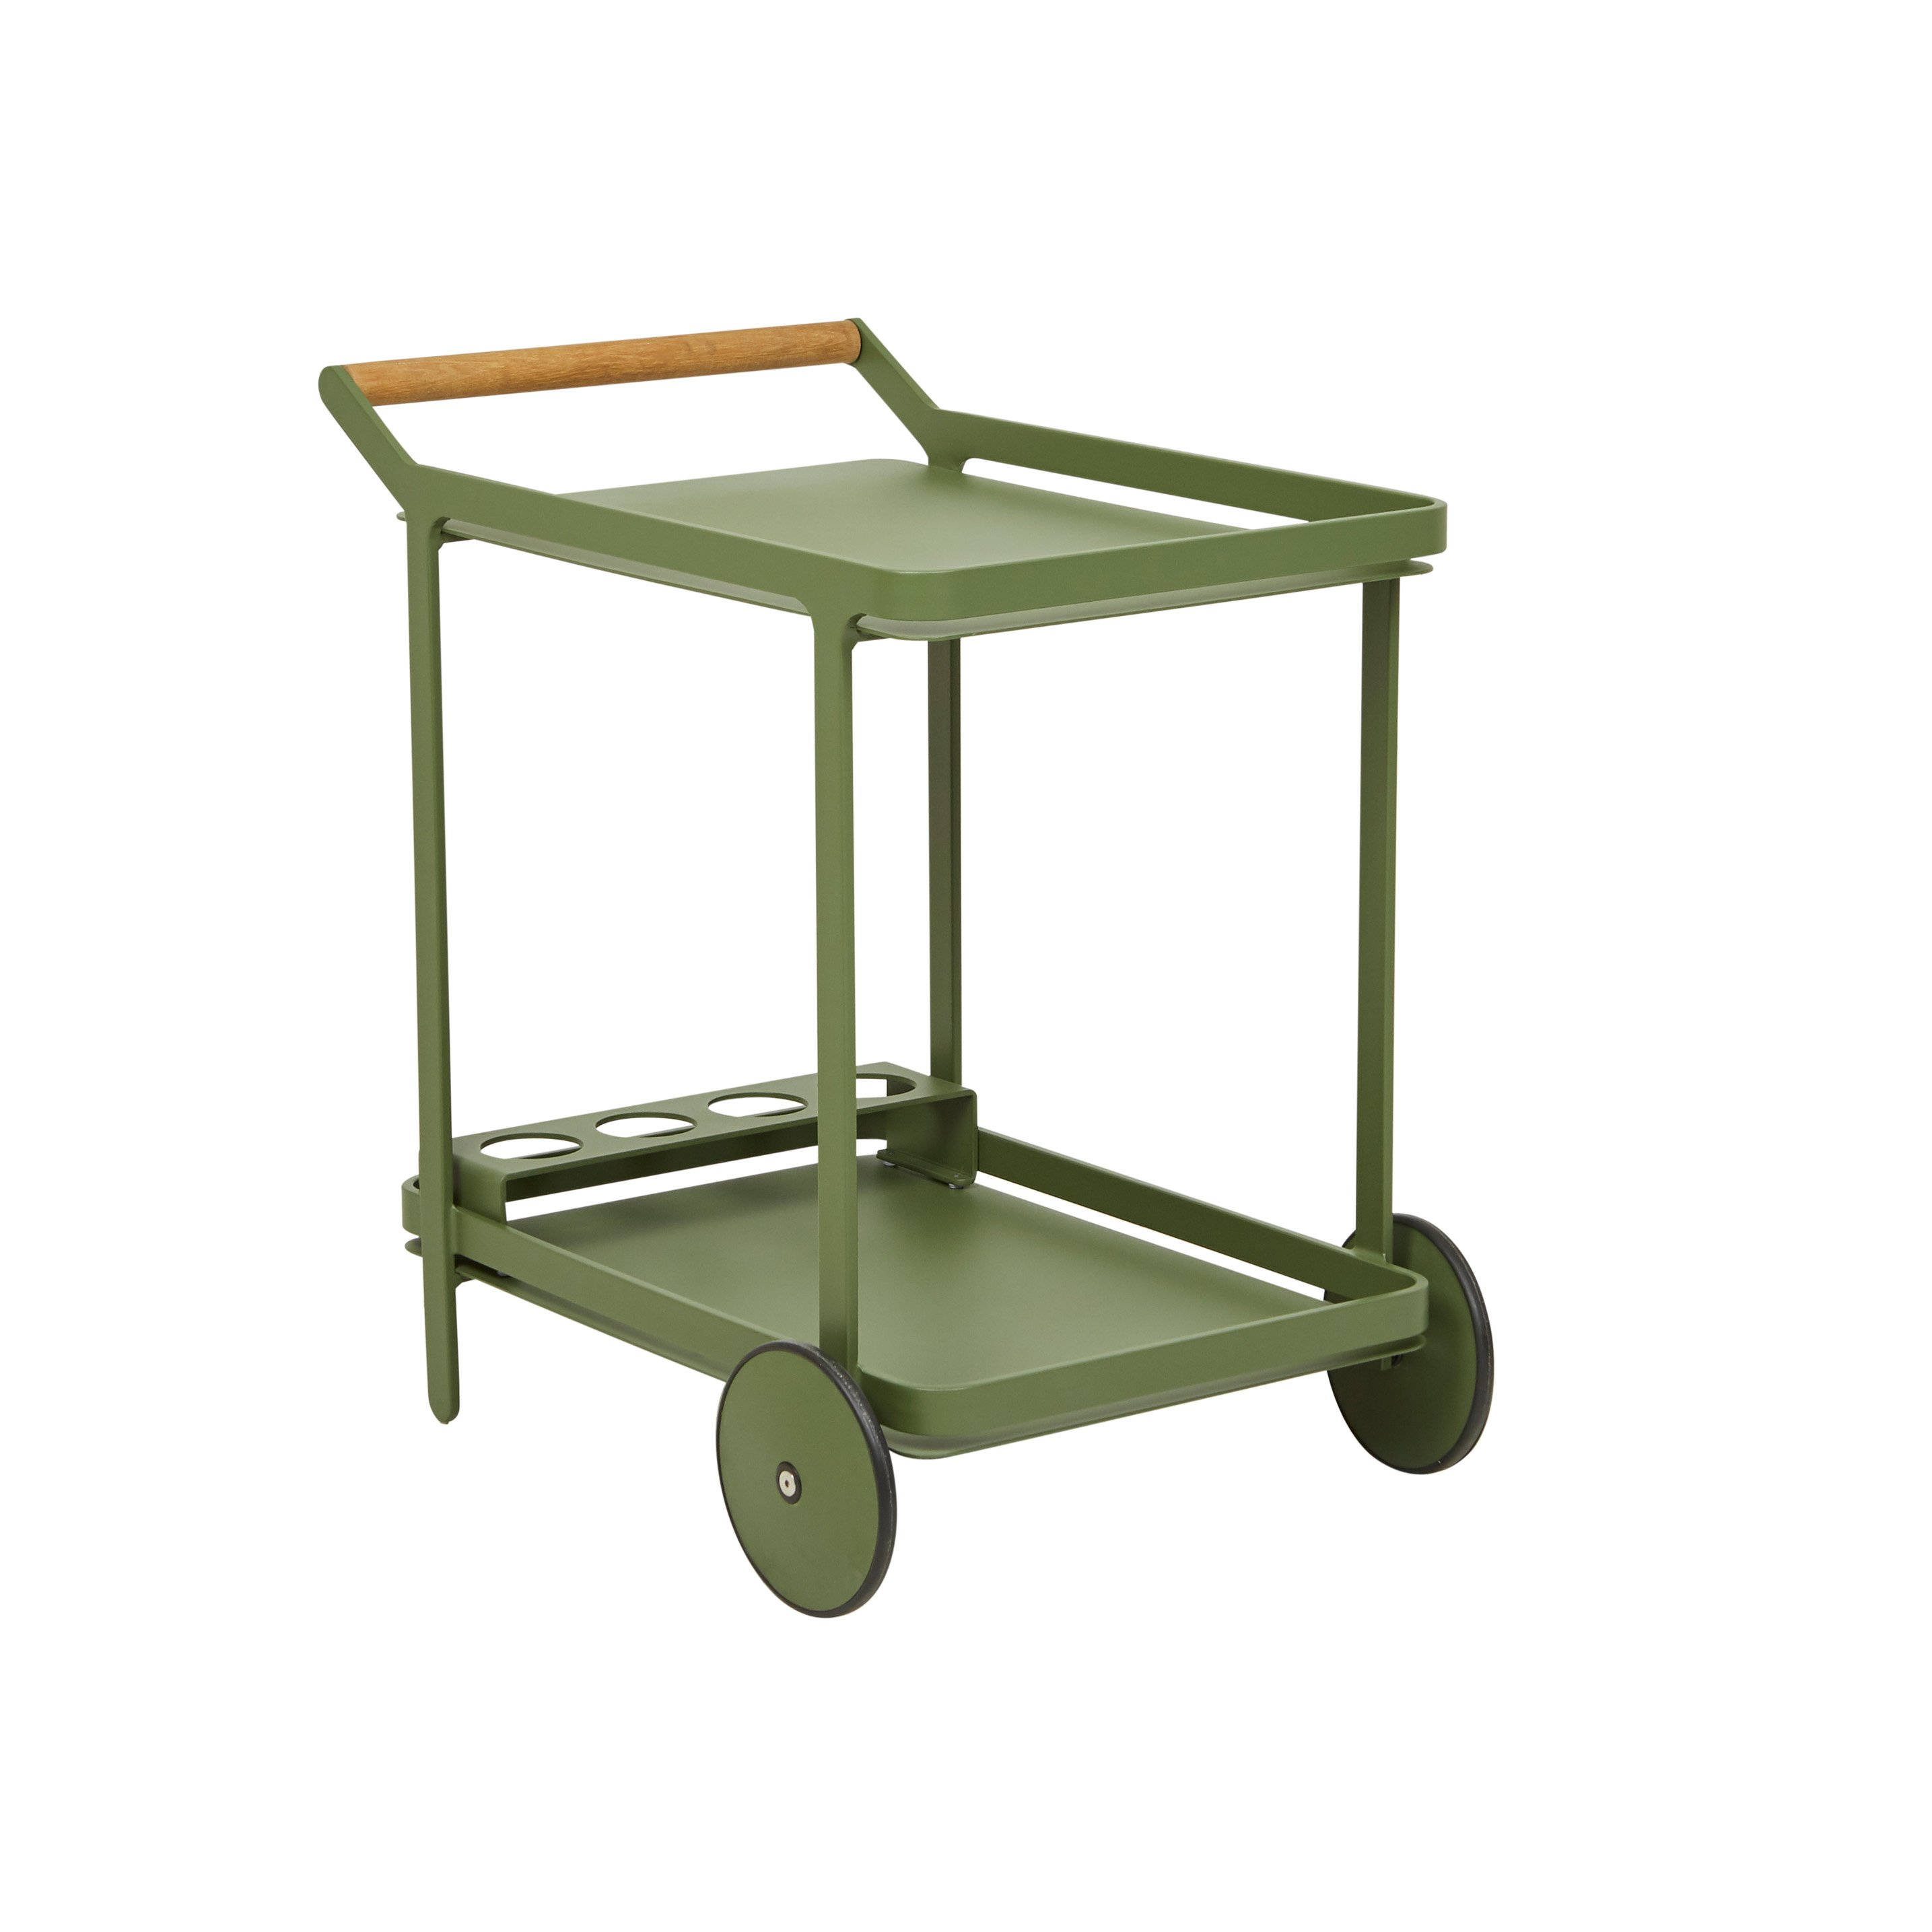 Furniture Hero-Images Coffee-Side-Tables-and-Trolleys lagoon-bar-trolley-02